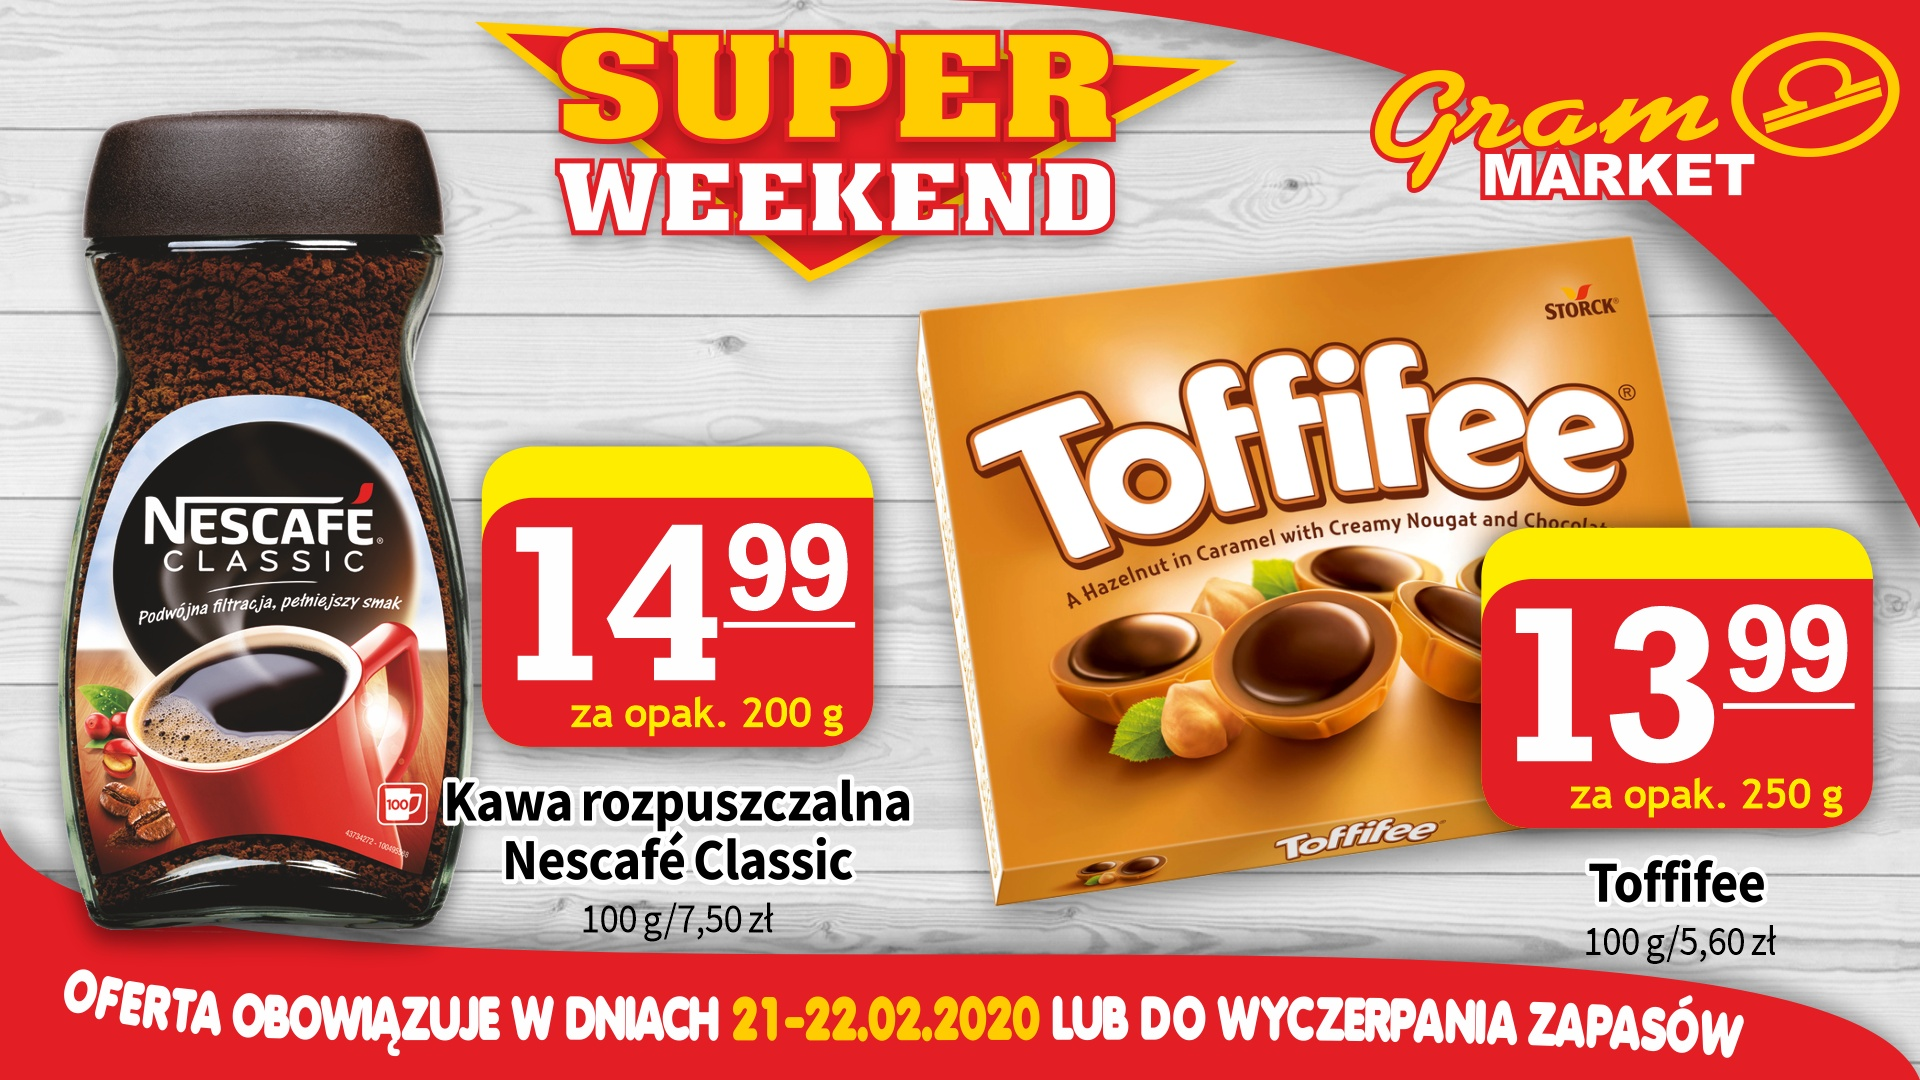 SUPER_WEEKEND-21-22-8